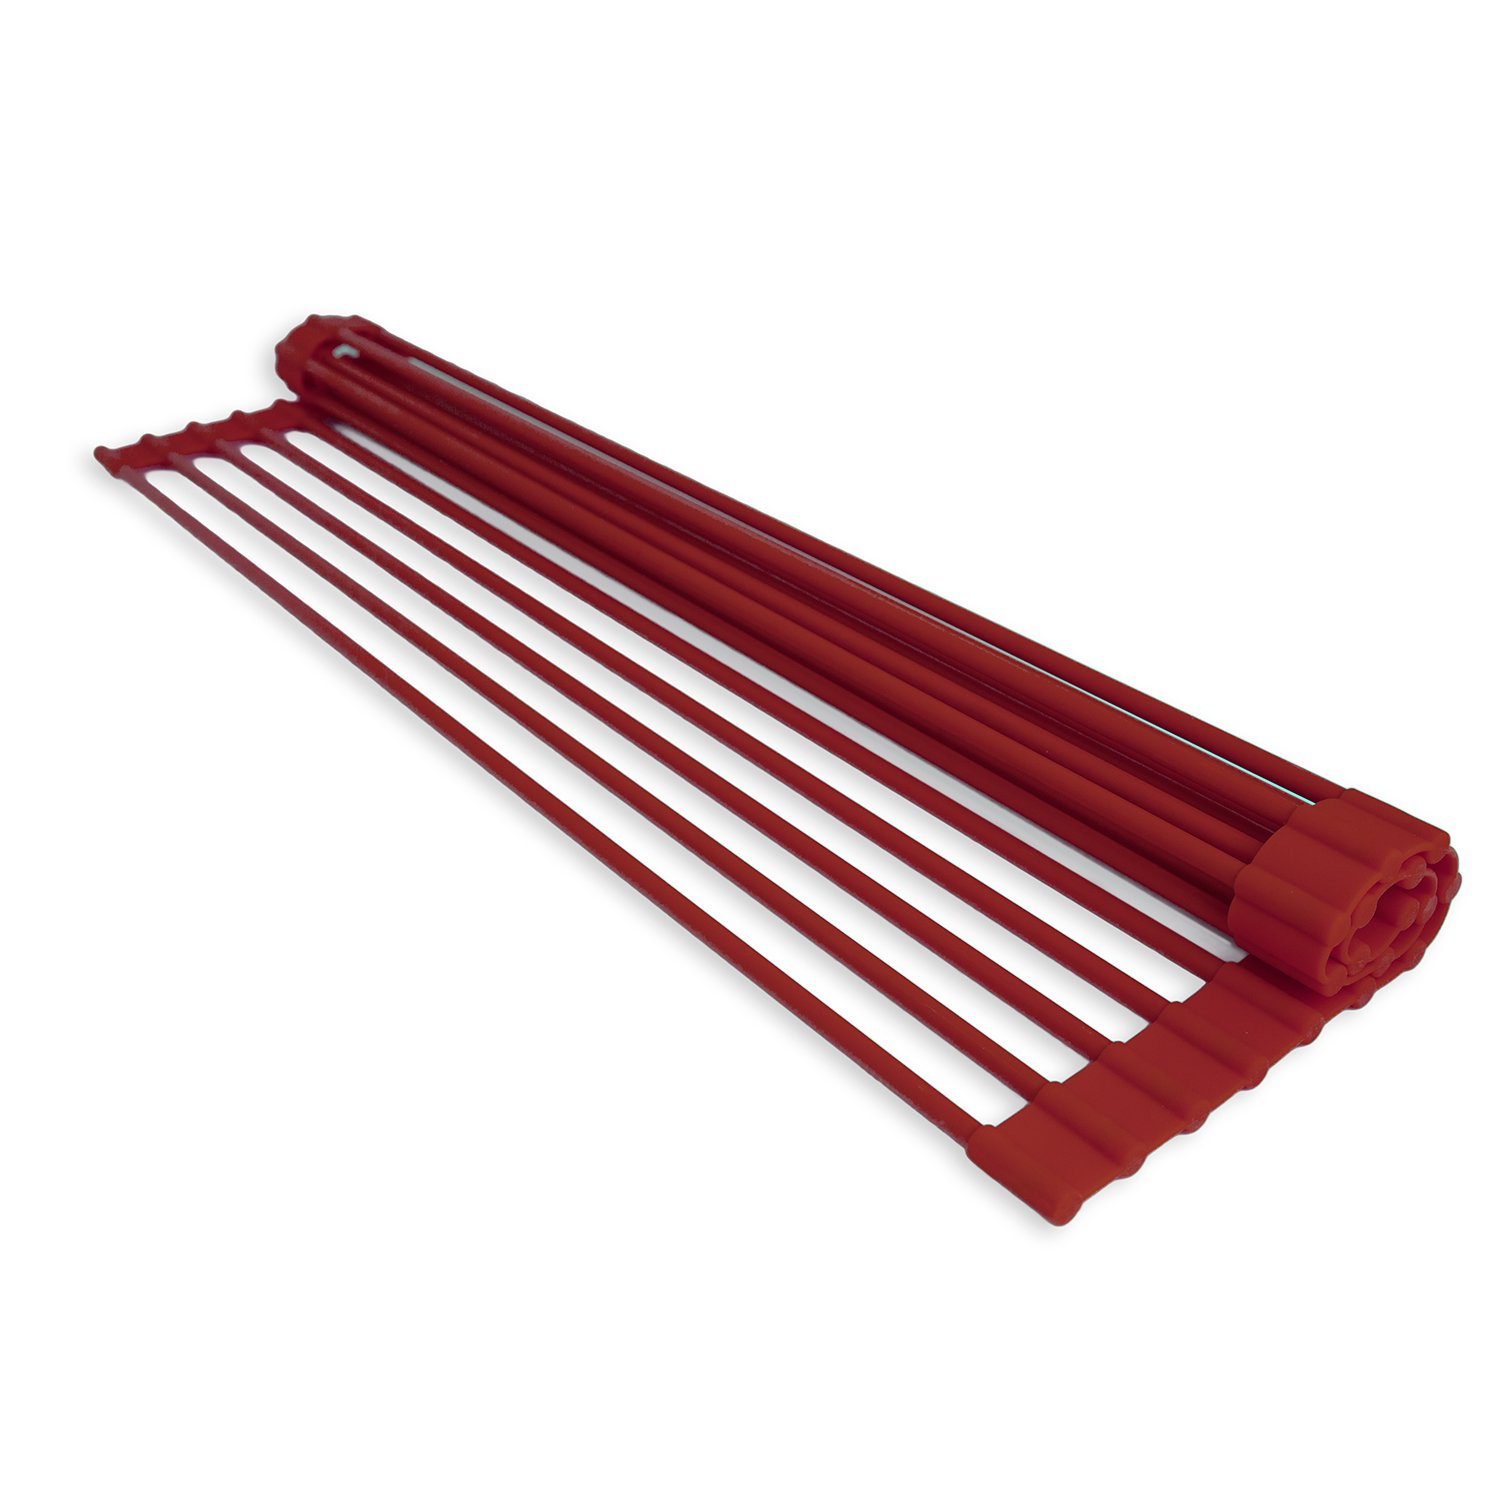 Over-the-Sink Dish Drying Rack by Domestic Corner - Roll-Up Dry Rack for Dishes, Plates, Cups, Pots, Pan and Produce - Red